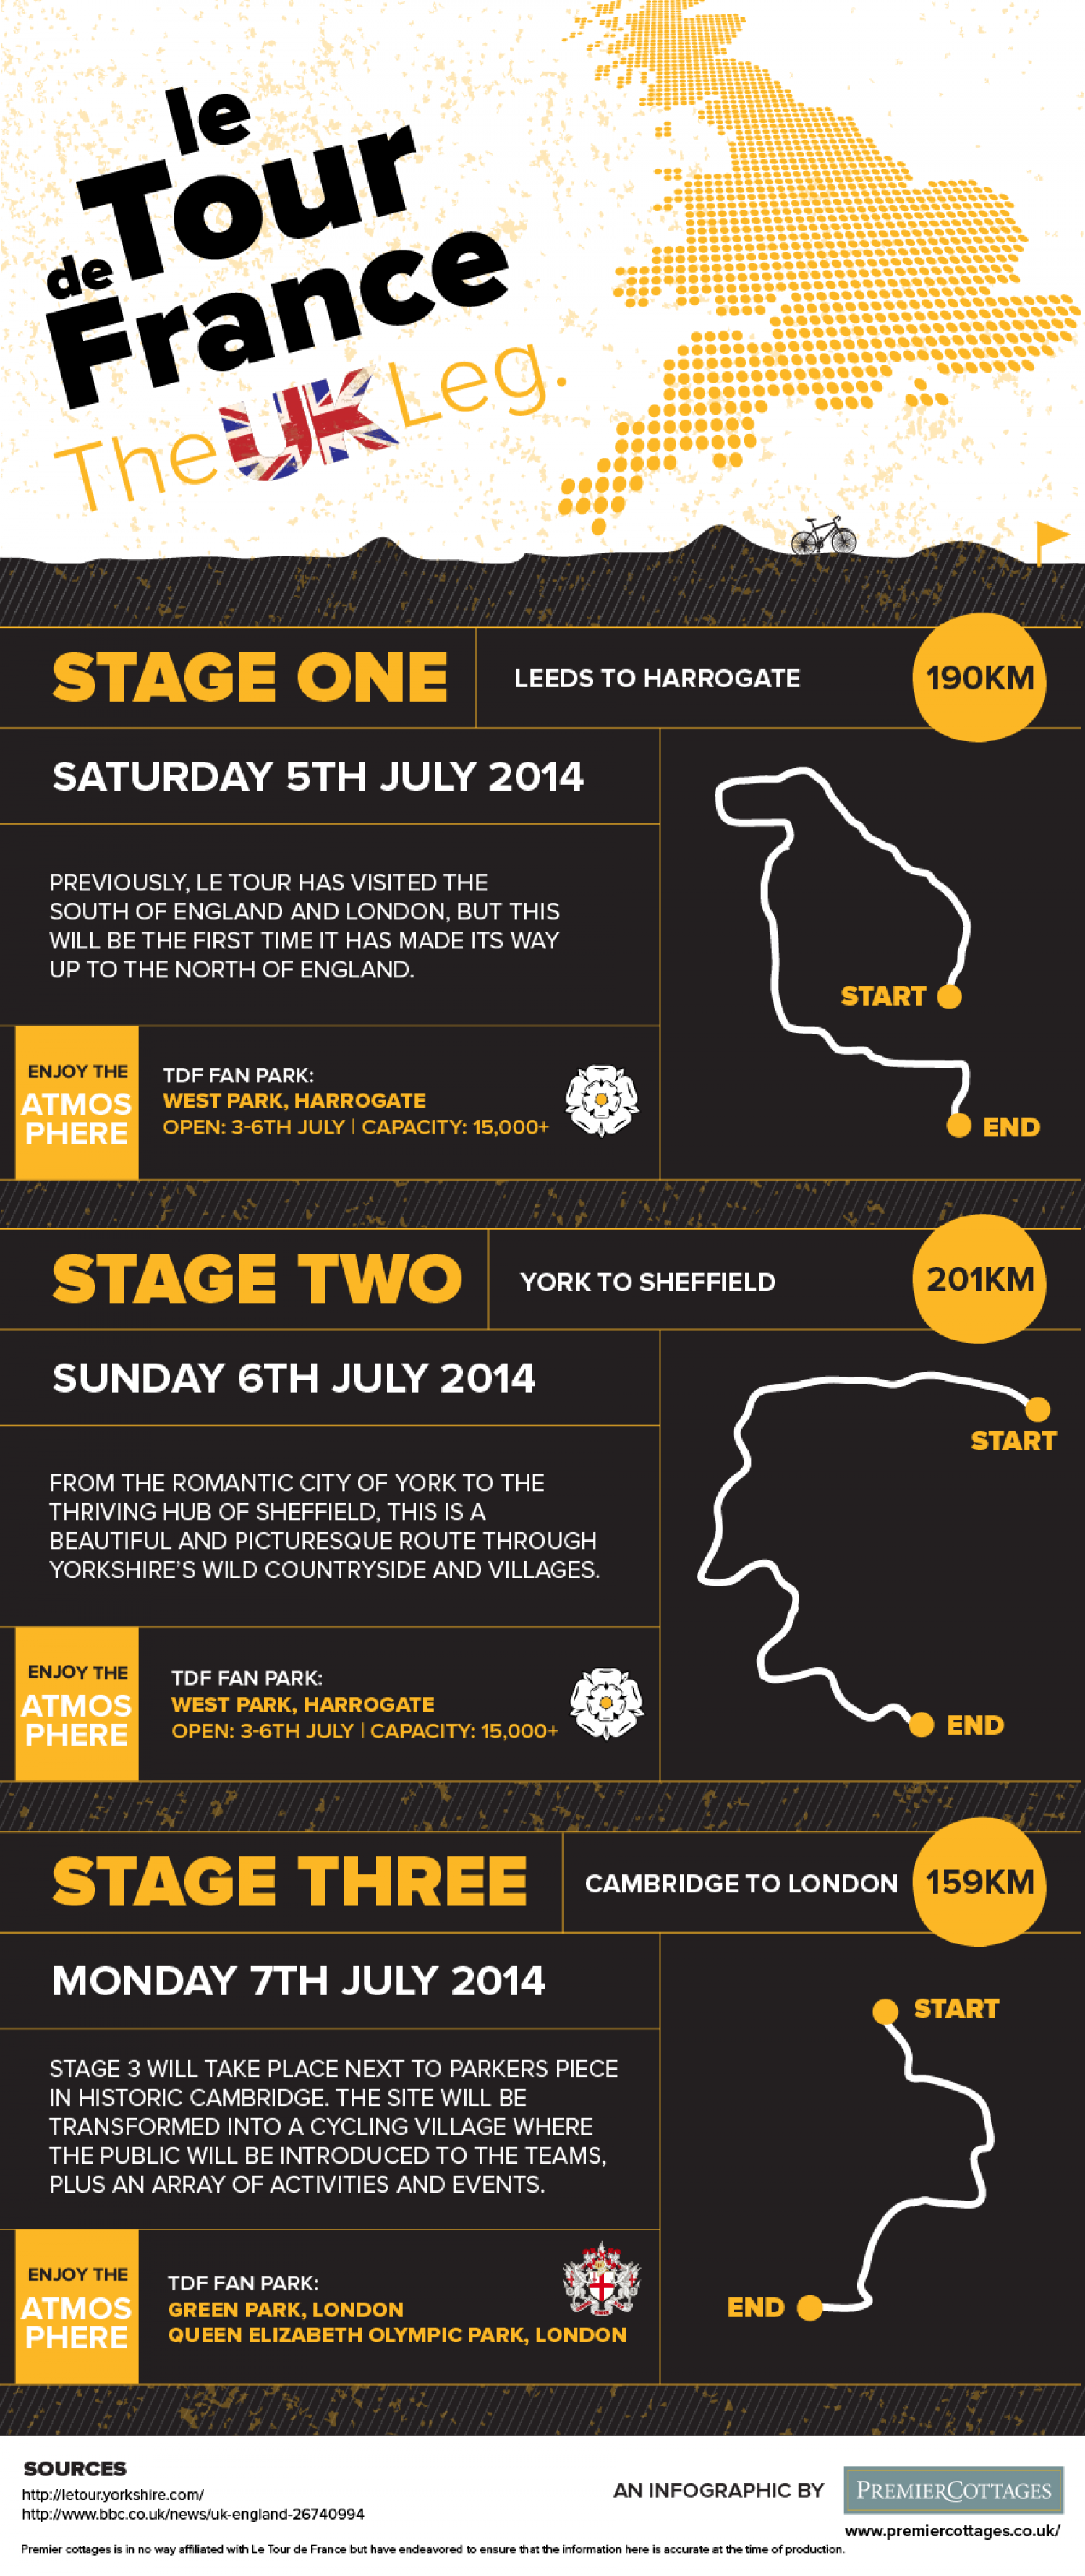 Le Tour de France the UK Leg Infographic